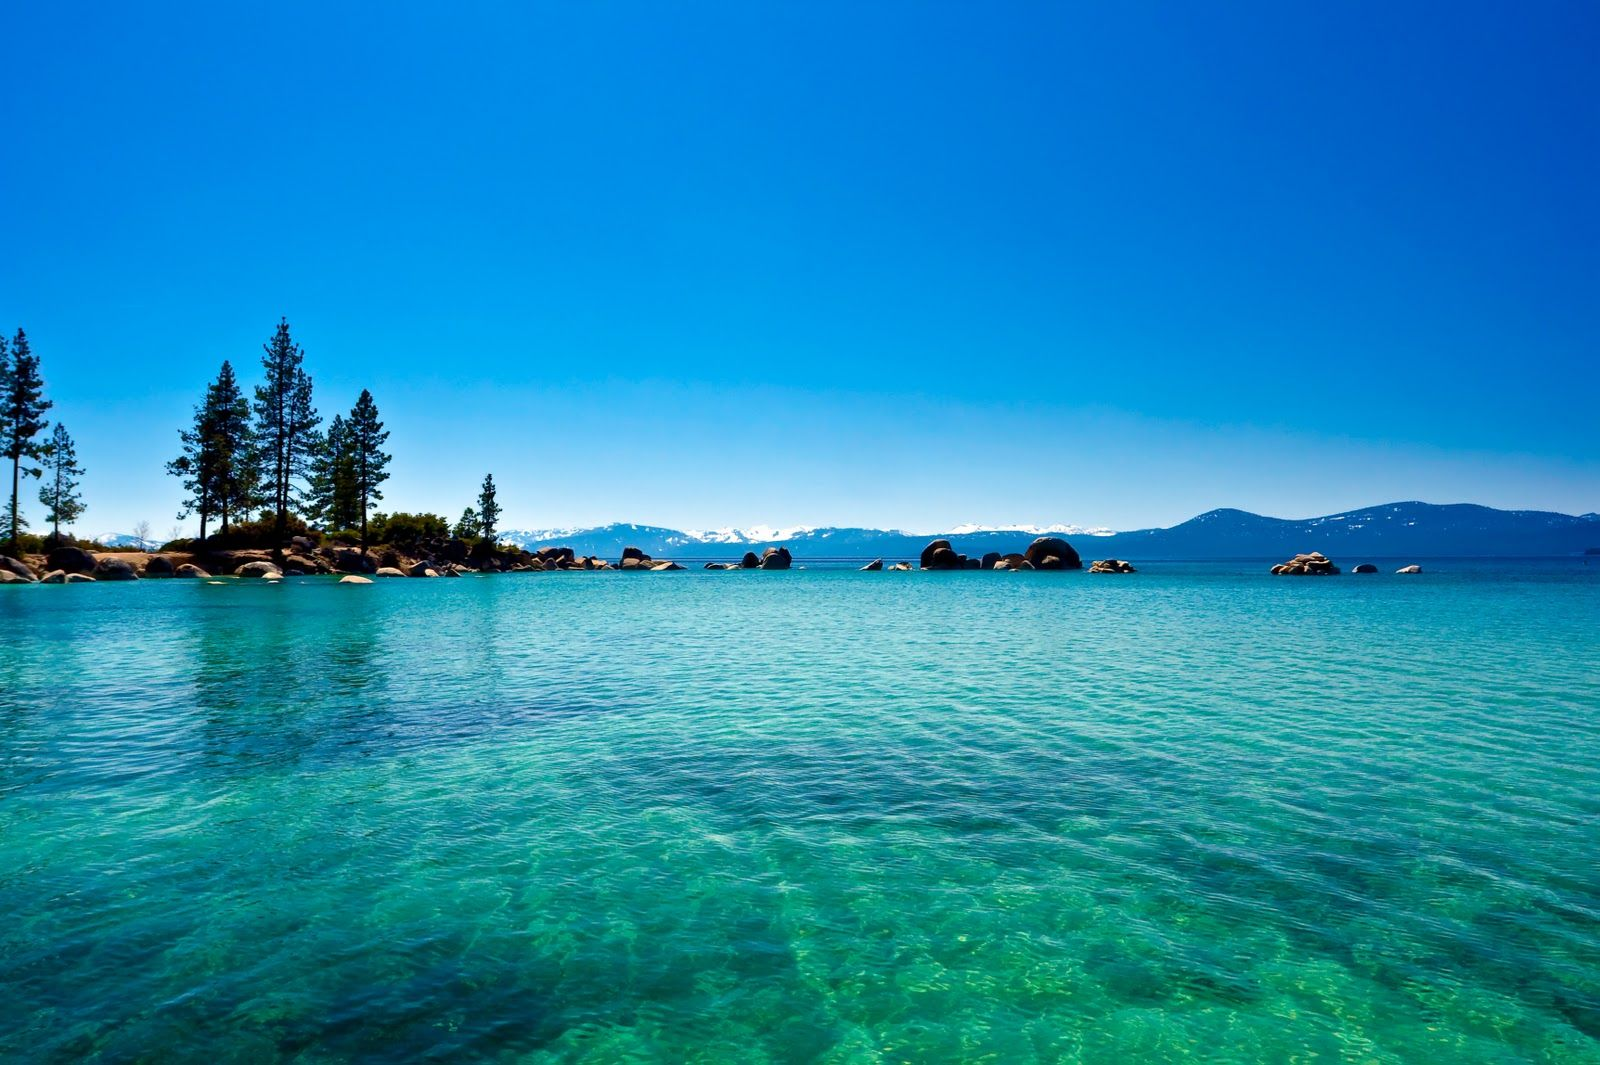 Lake tahoe sunset travel channel pinterest - Lake Tahoe Bennett Family Tradition That Kyle And I Have Been Taking Part In For